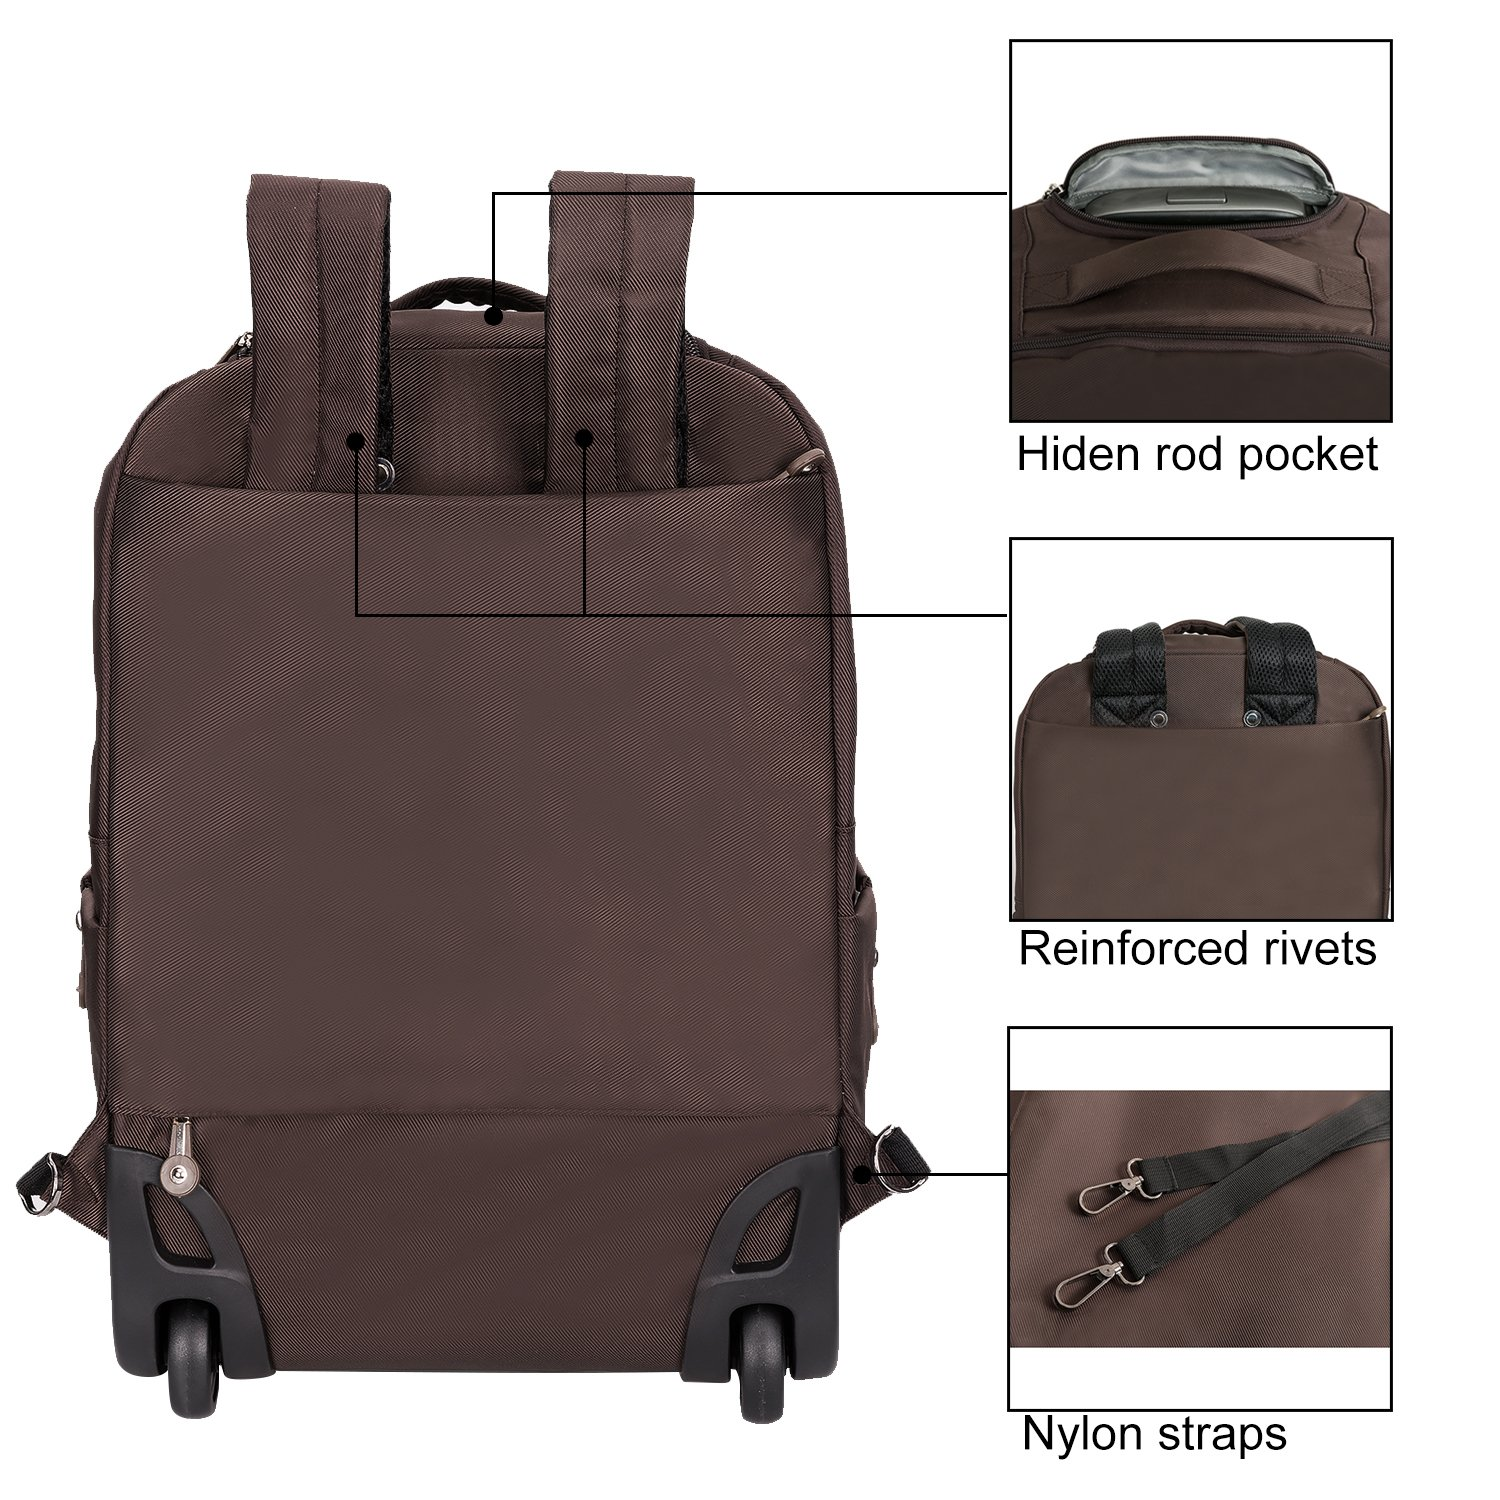 20 inches Large Storage Multifunction Waterproof Travel Wheeled Rolling Laptop Backpack Luggage, Brown by HollyHOME (Image #5)